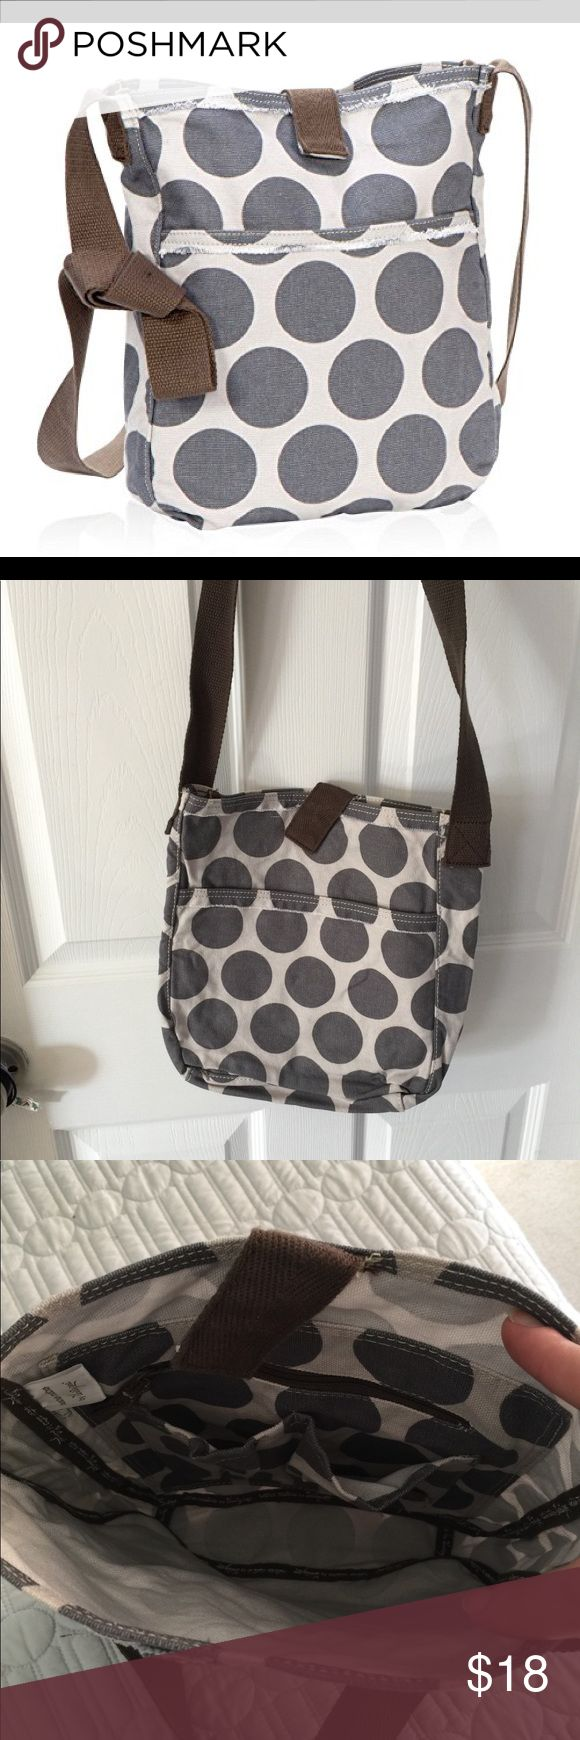 "Never Used Thirty-One Retro Metro Crossbody Never Used Thirty-One Retro Metro Crossbody in Gray Mod Dot. 11""H x 9.5""W x 2""D. Thirty-One Bags Crossbody Bags"